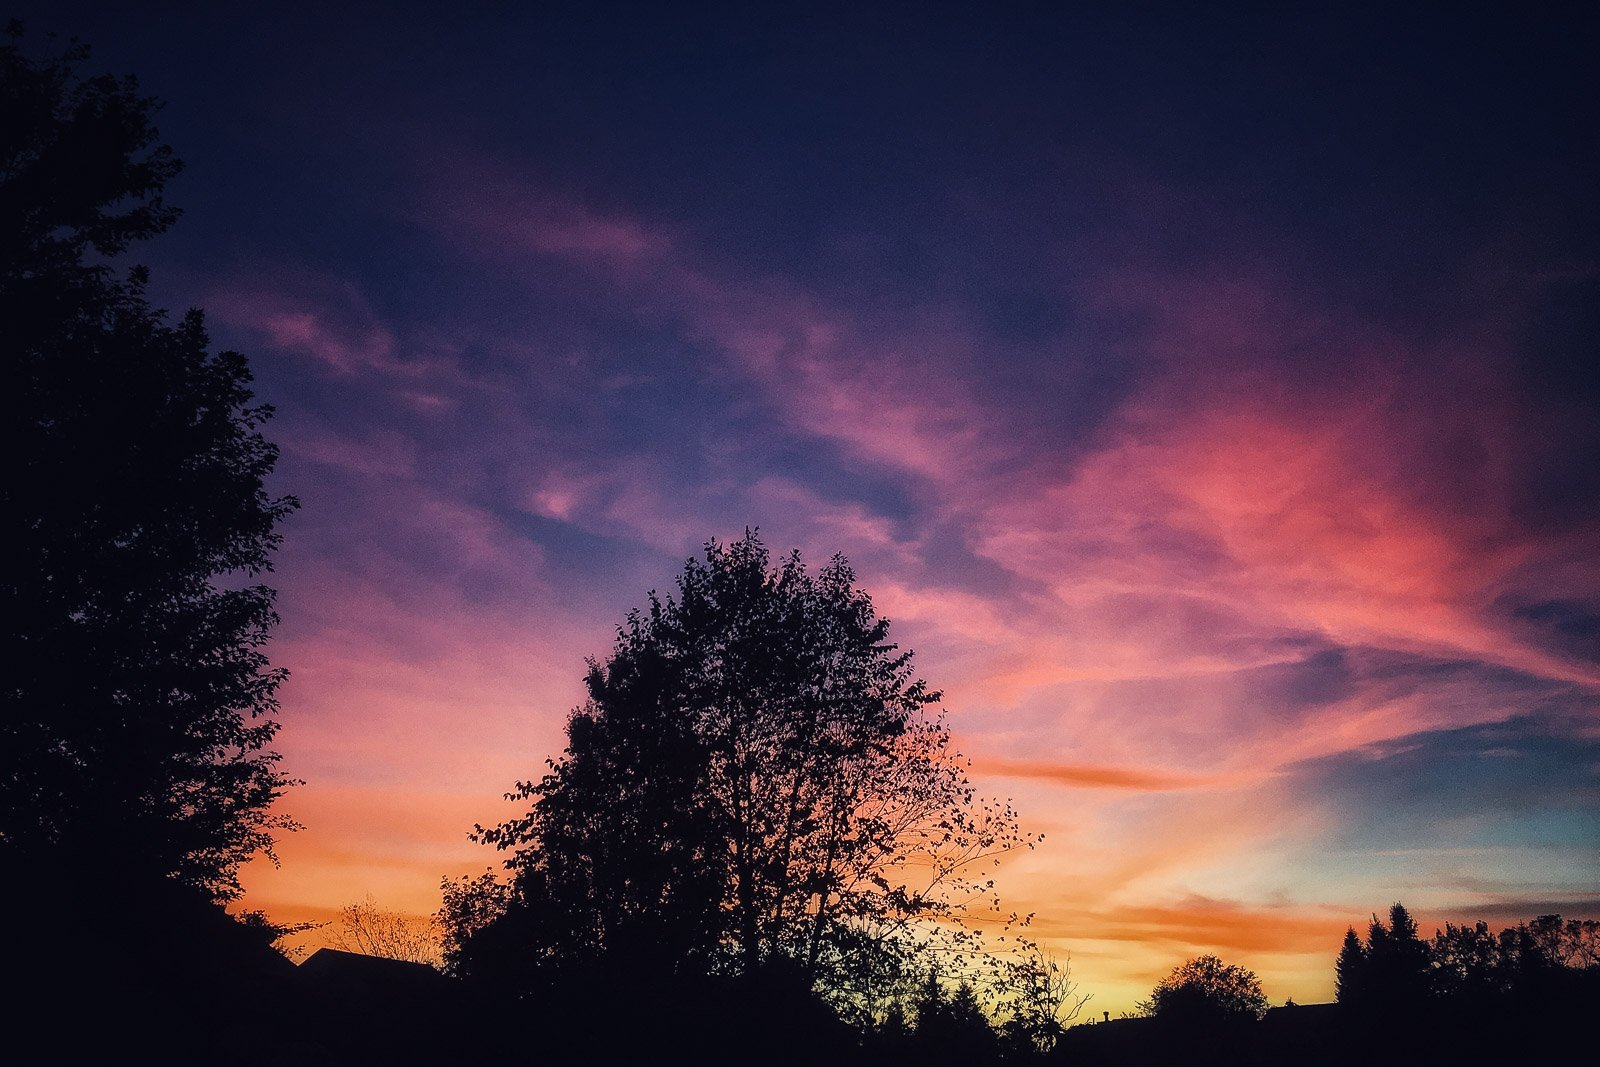 mobile image of a beautiful sunset